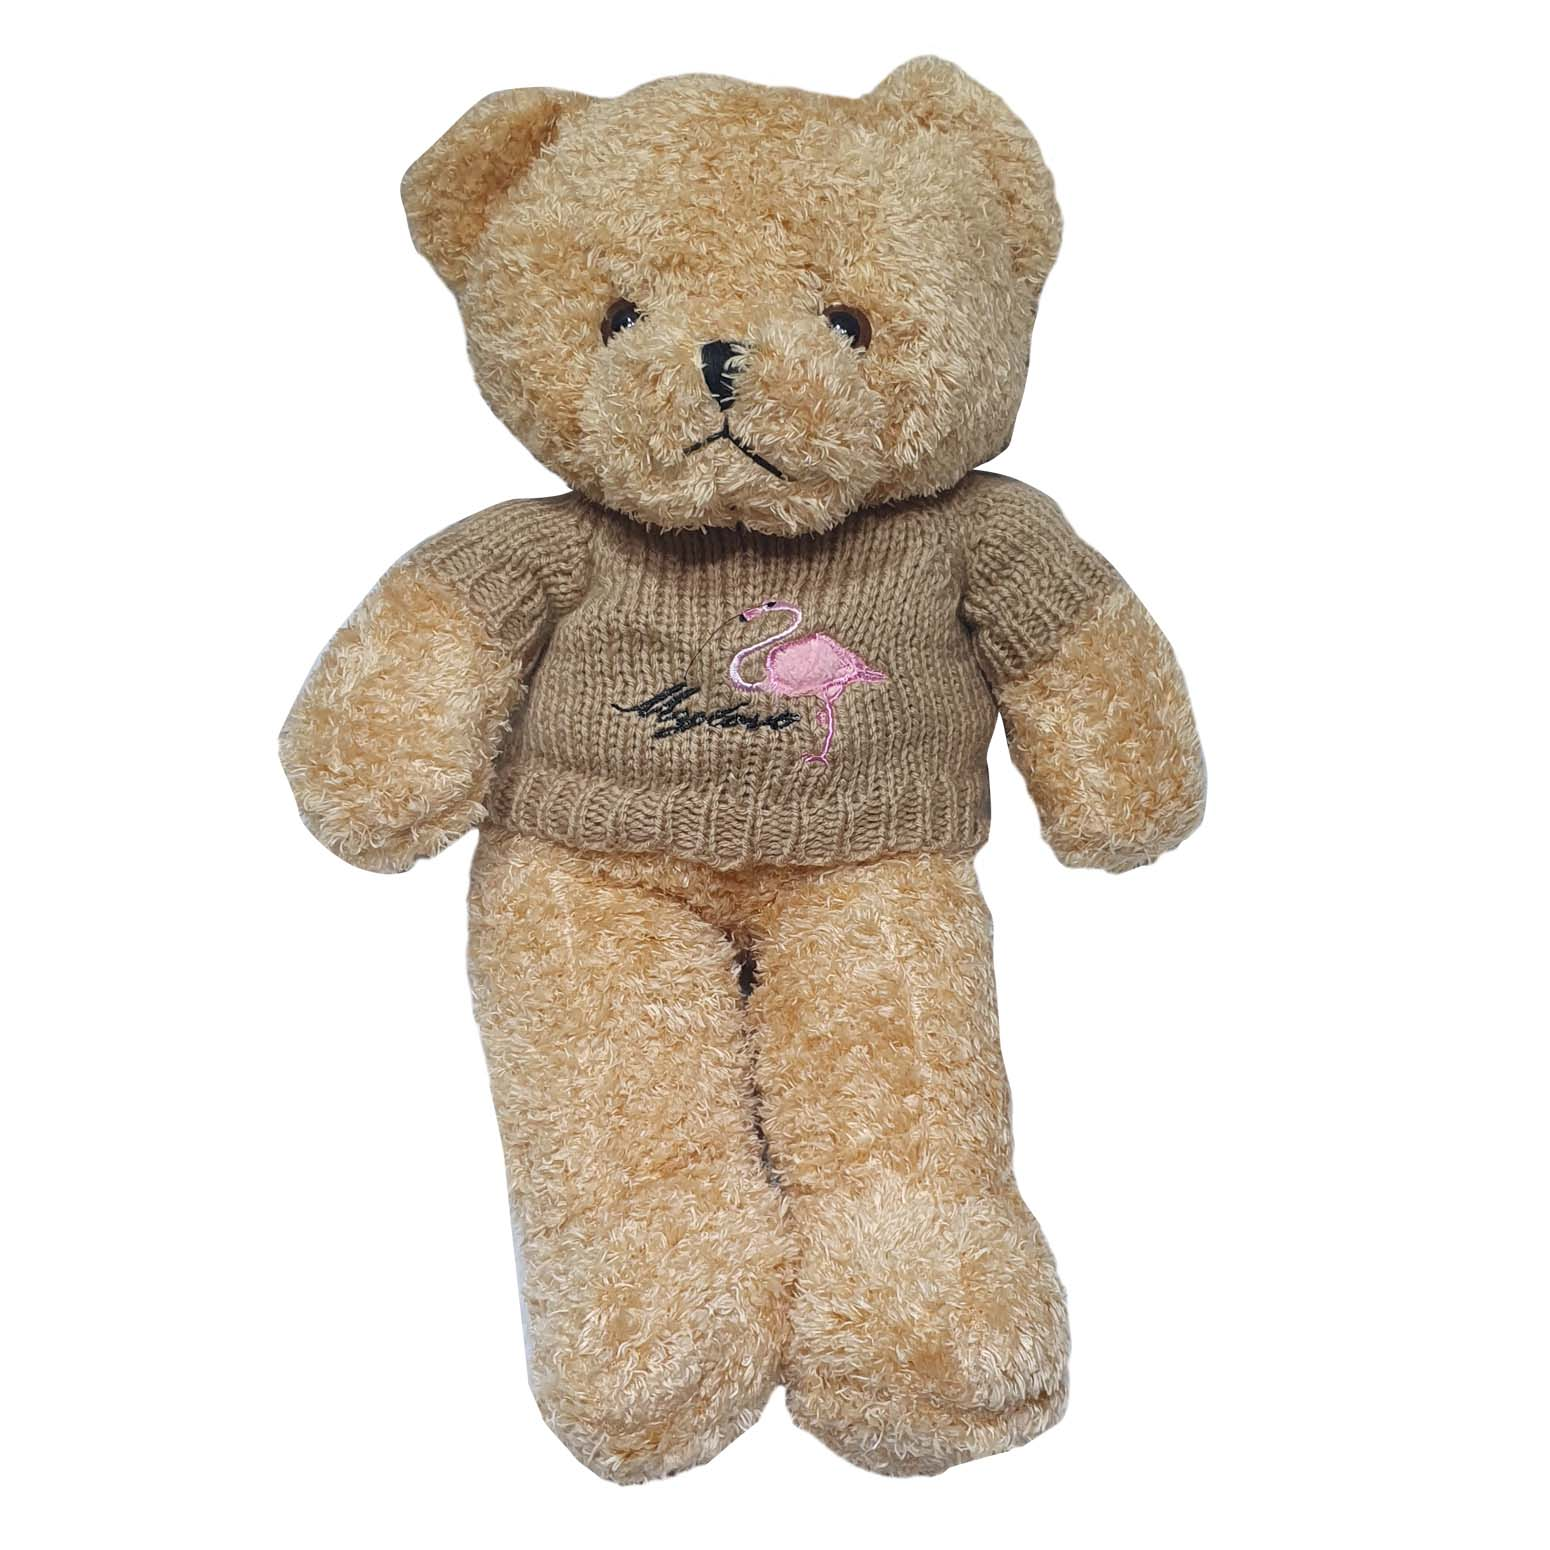 Fur Teddy Bear #41907118011